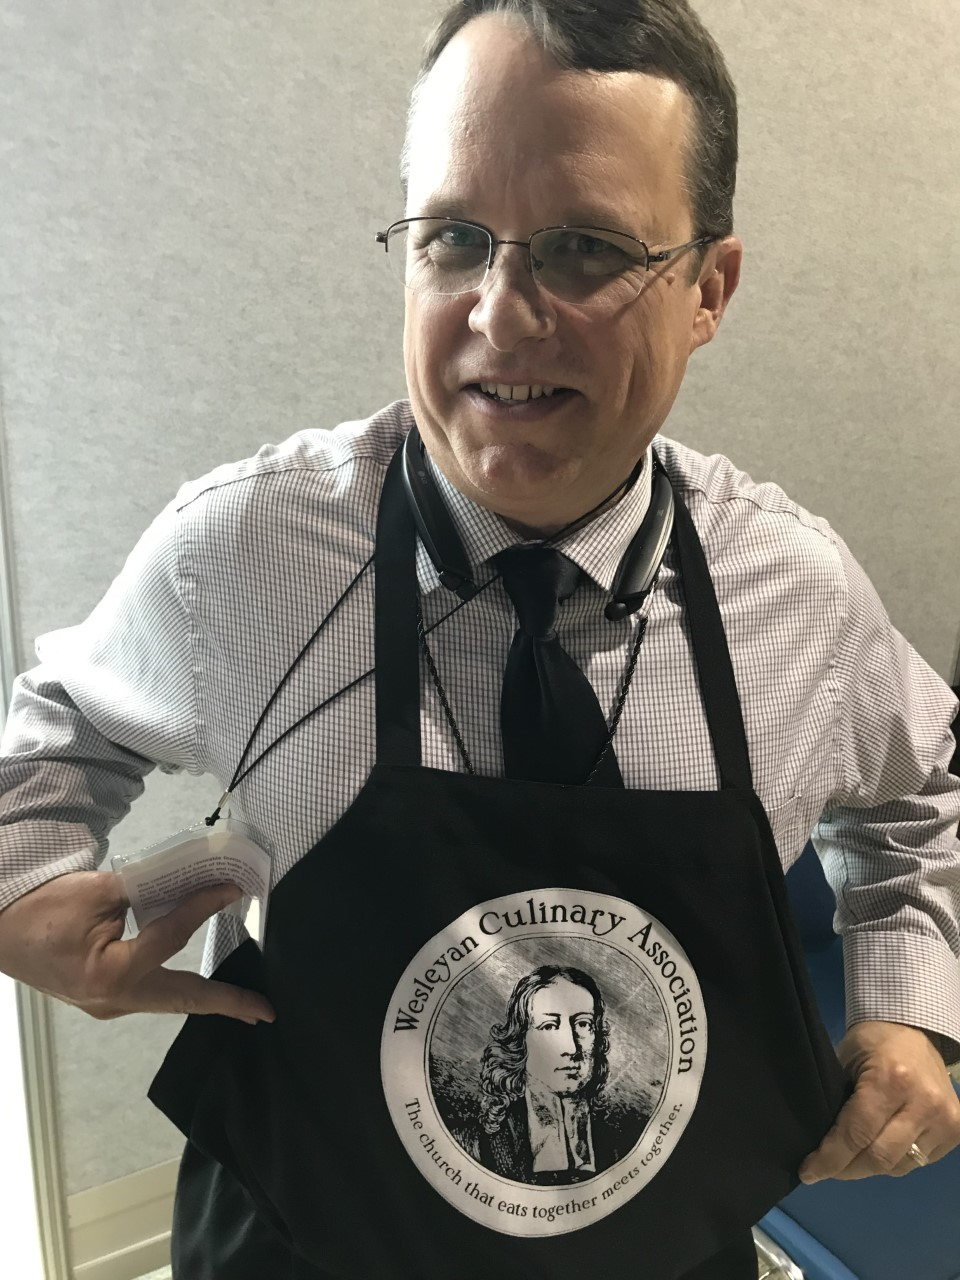 The Rev. John Feagins shows off a Wesleyan Culinary Association apron on Feb. 23. He's among many observers at the 2019 General Conference in St. Louis, and he's been in the corridors of America's Center, talking to delegates and others about how food can be a bridge for people with different theological views. The Wesleyan Culinary Association is a Facebook group which shares potluck and communion bread recipes. Photo by Sam Hodges, UMNS.